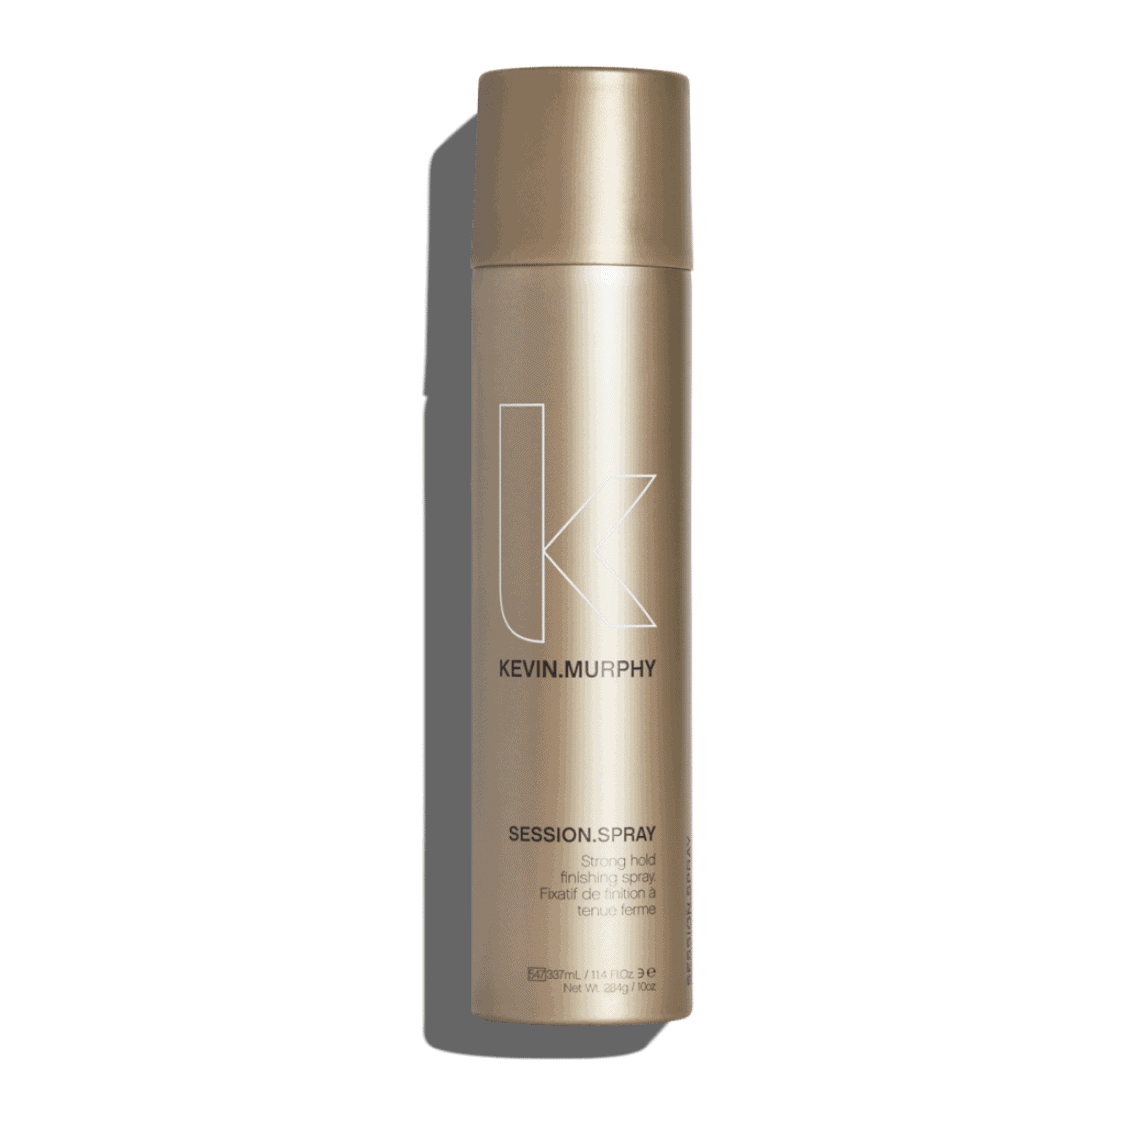 Kevin Murphy - SESSION.SPRAY 100ml